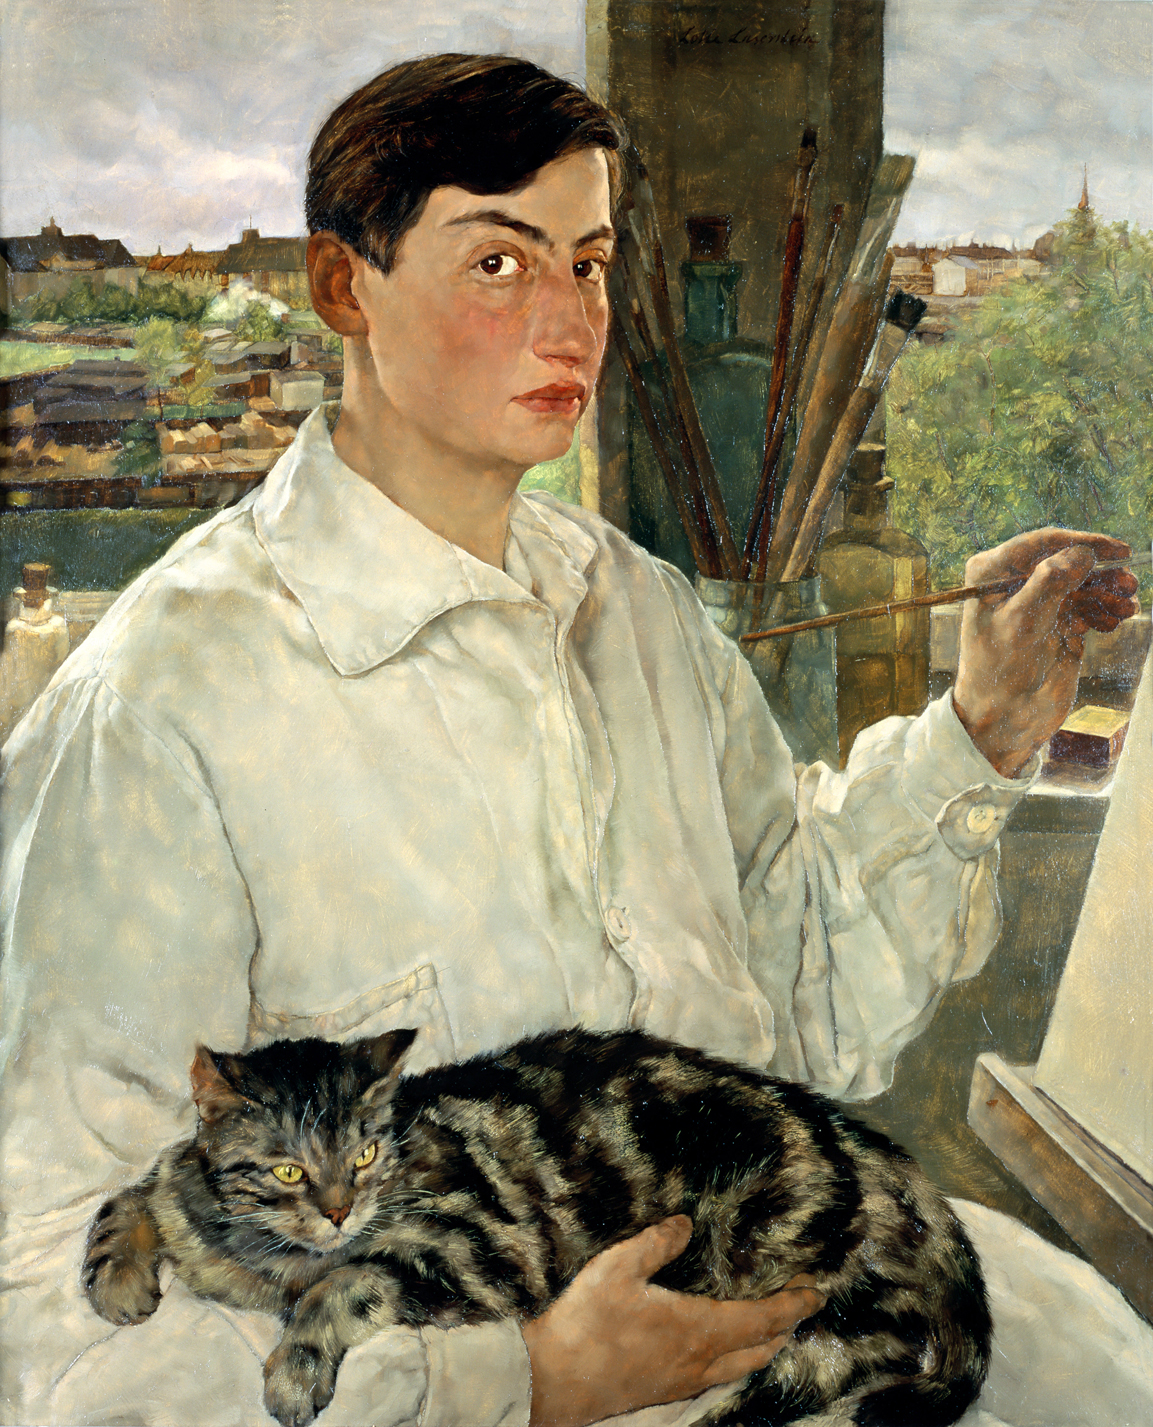 Lotte Laserstein, Selbstporträt mit Katze, 1928, New Walk Museum and Art Gallery, Leicester, Reproduced courtesy of Leicester Arts and Museums Service / Bridgeman Images © VG Bild-Kunst, Bonn 2019